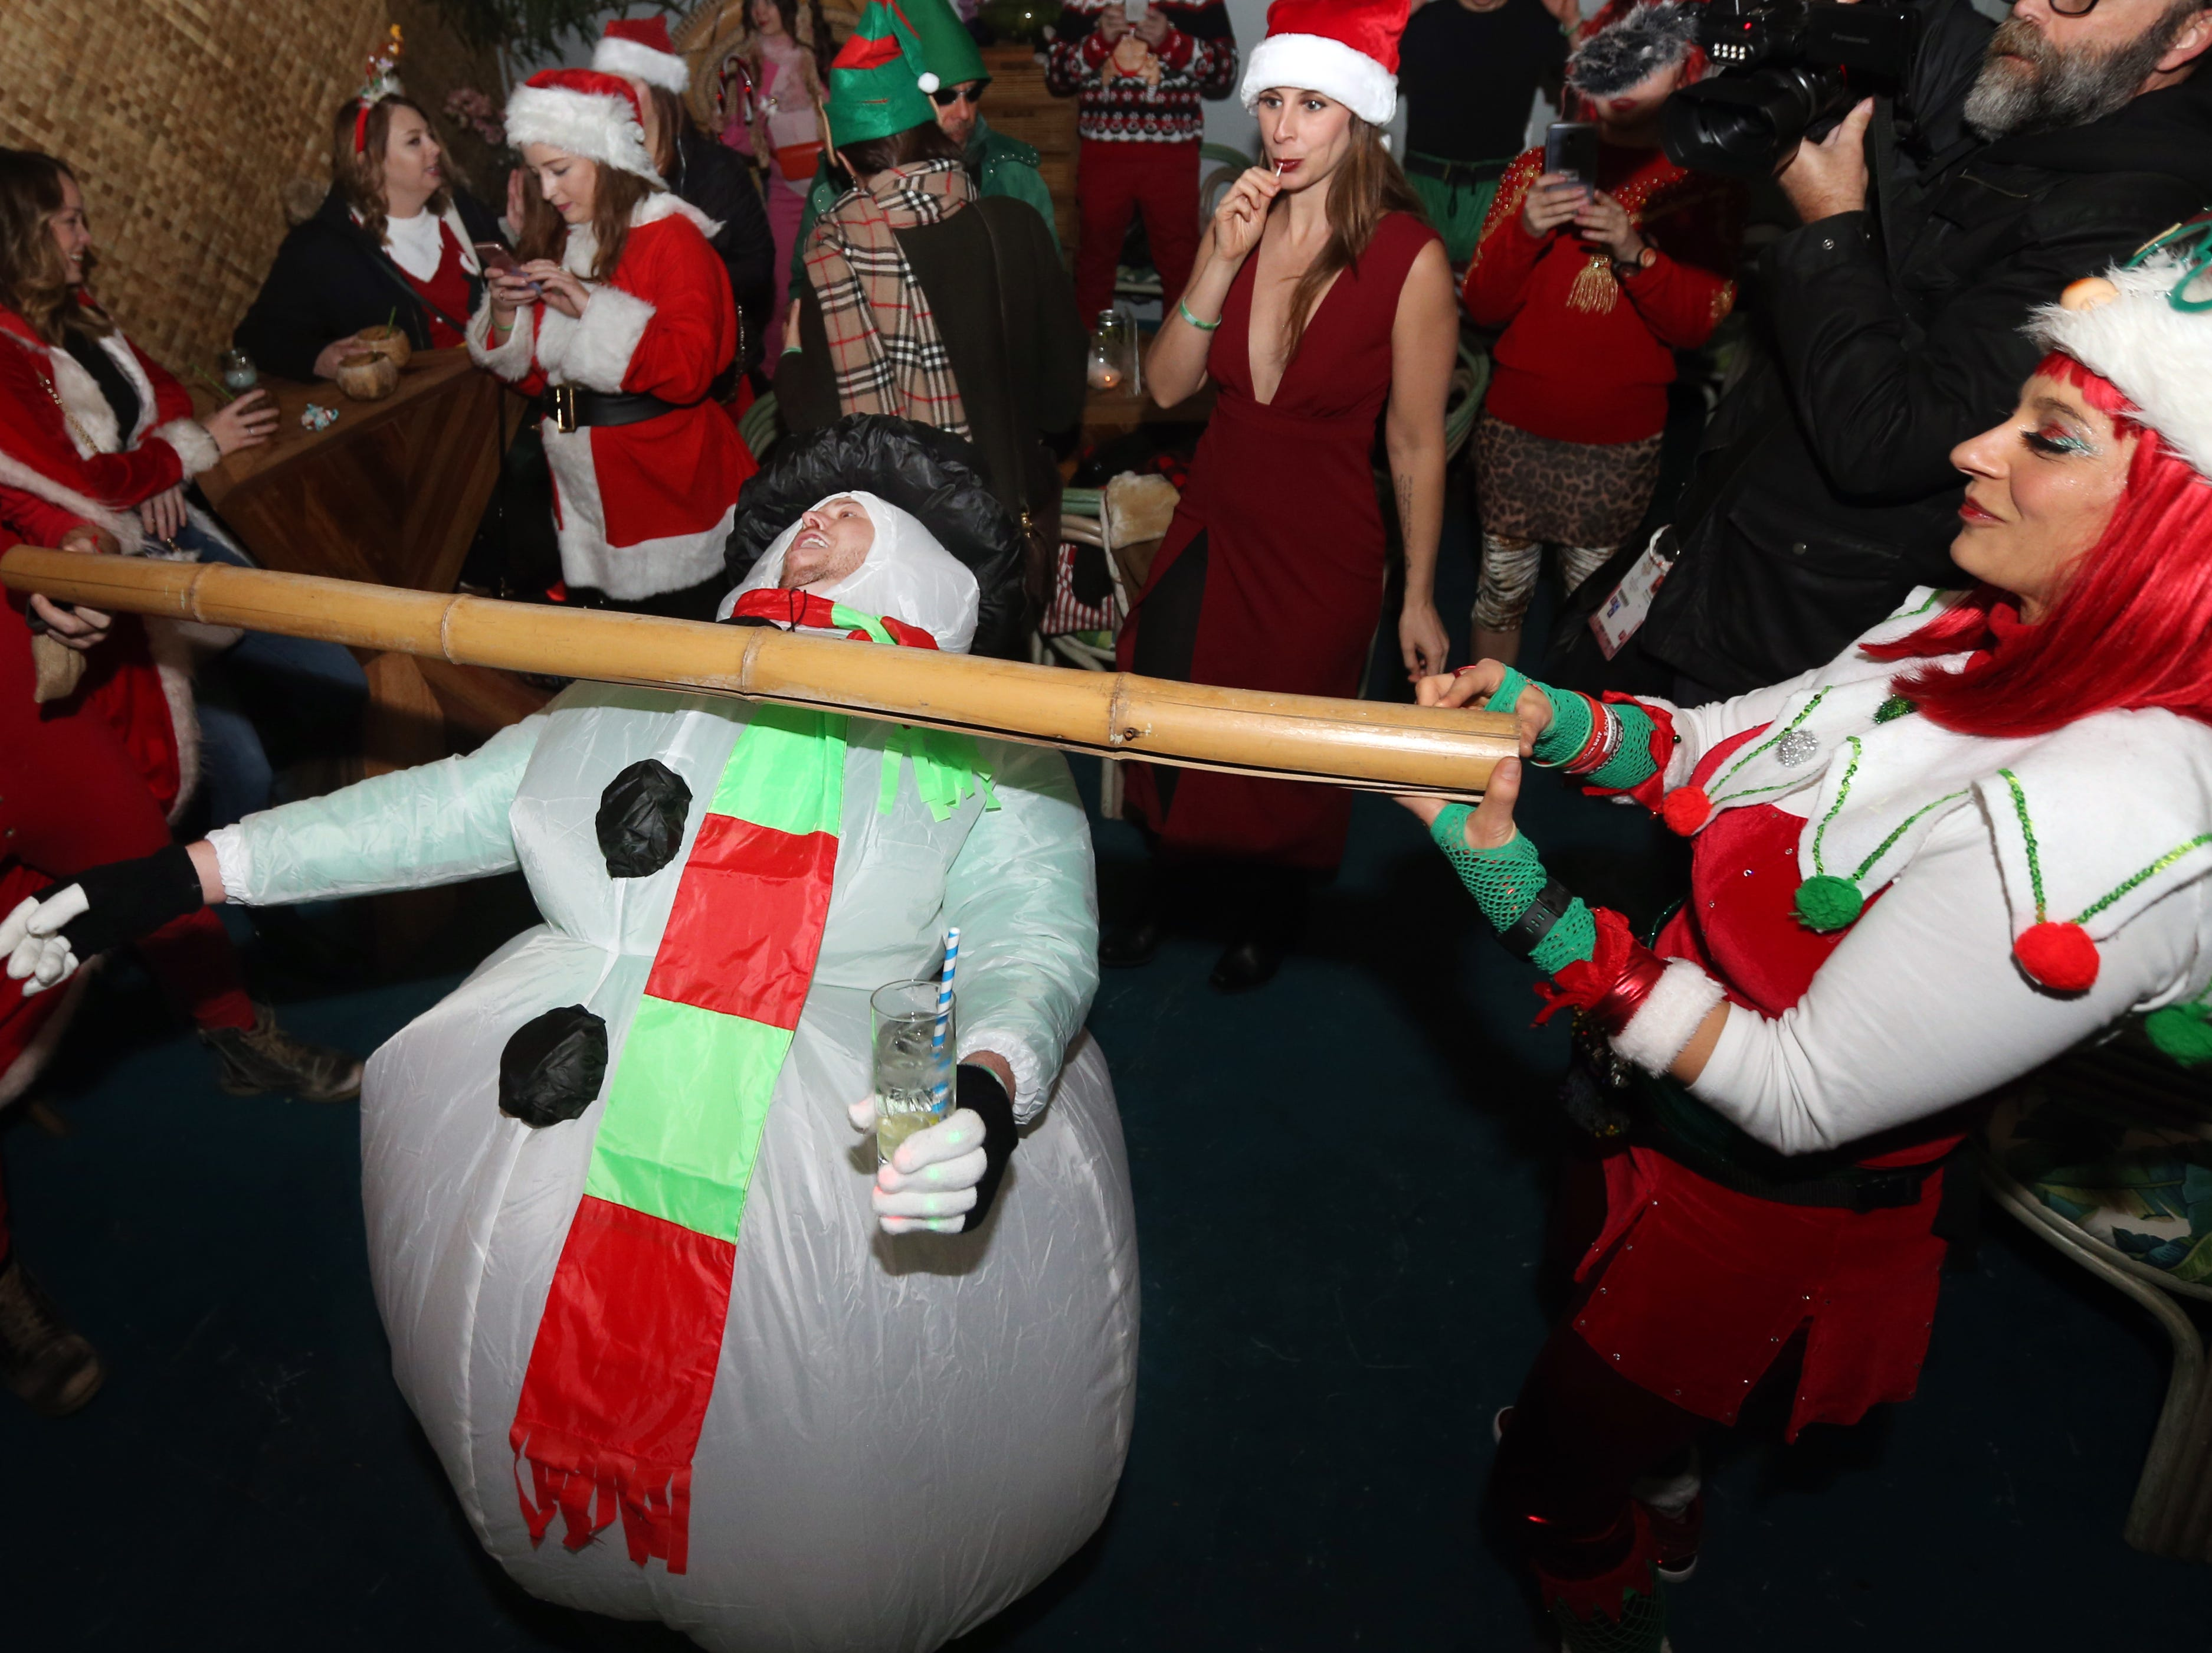 The SantaCon crowd stops by The Limbo Bar and Tiki Lounge on Chestnut. Dec. 8, 2018